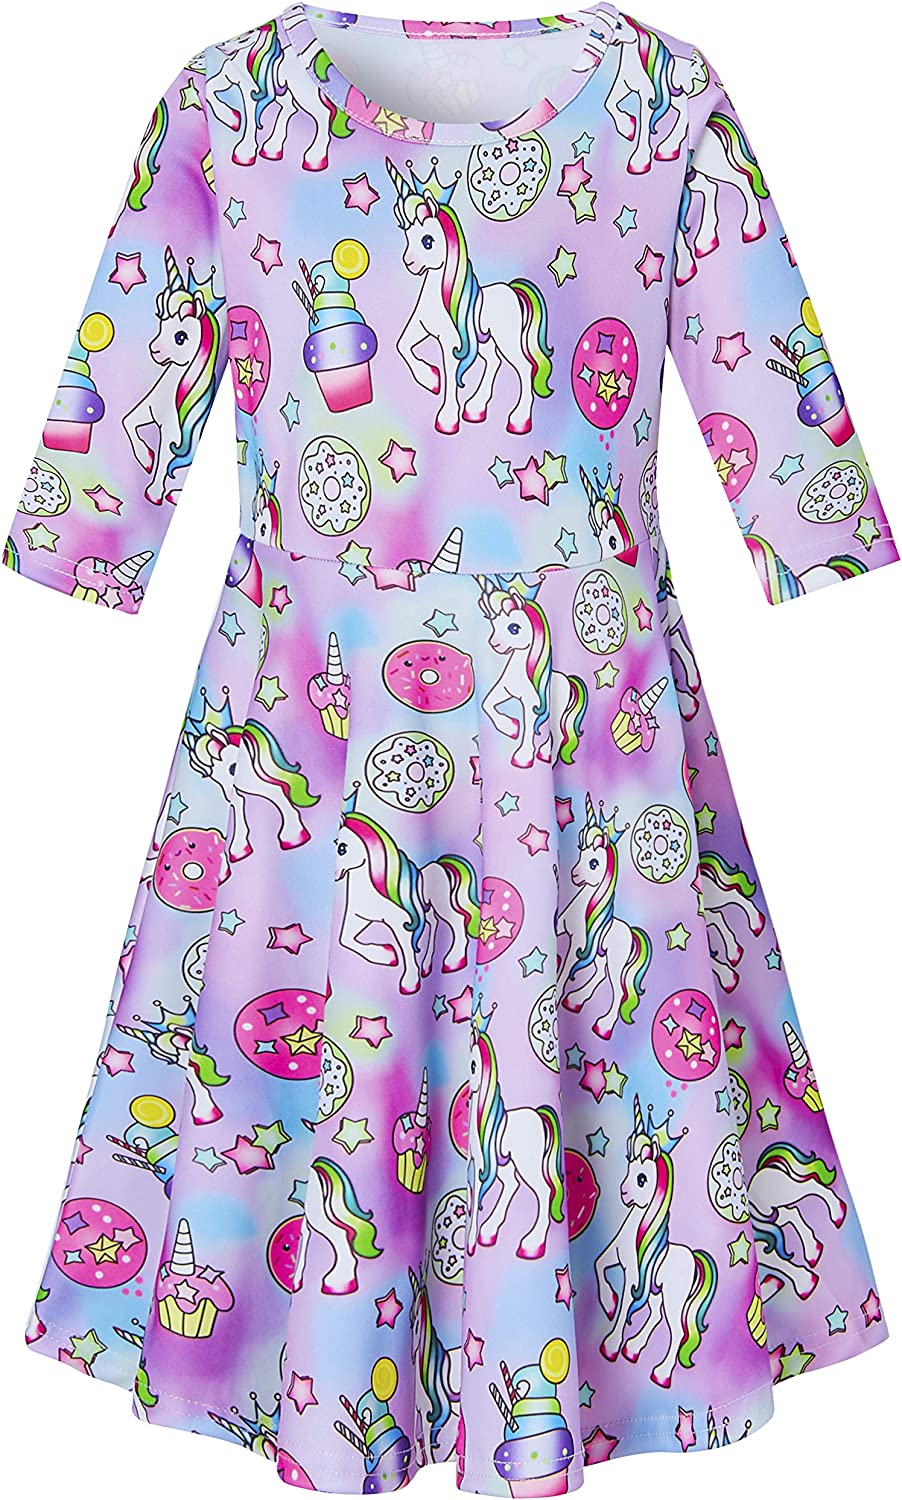 uideazone Girls 3/4 Sleeve Dresses Kids Casual Printed Twirly Skirt School Party Wear Attractive Daily Outfits 4-13 Year Old